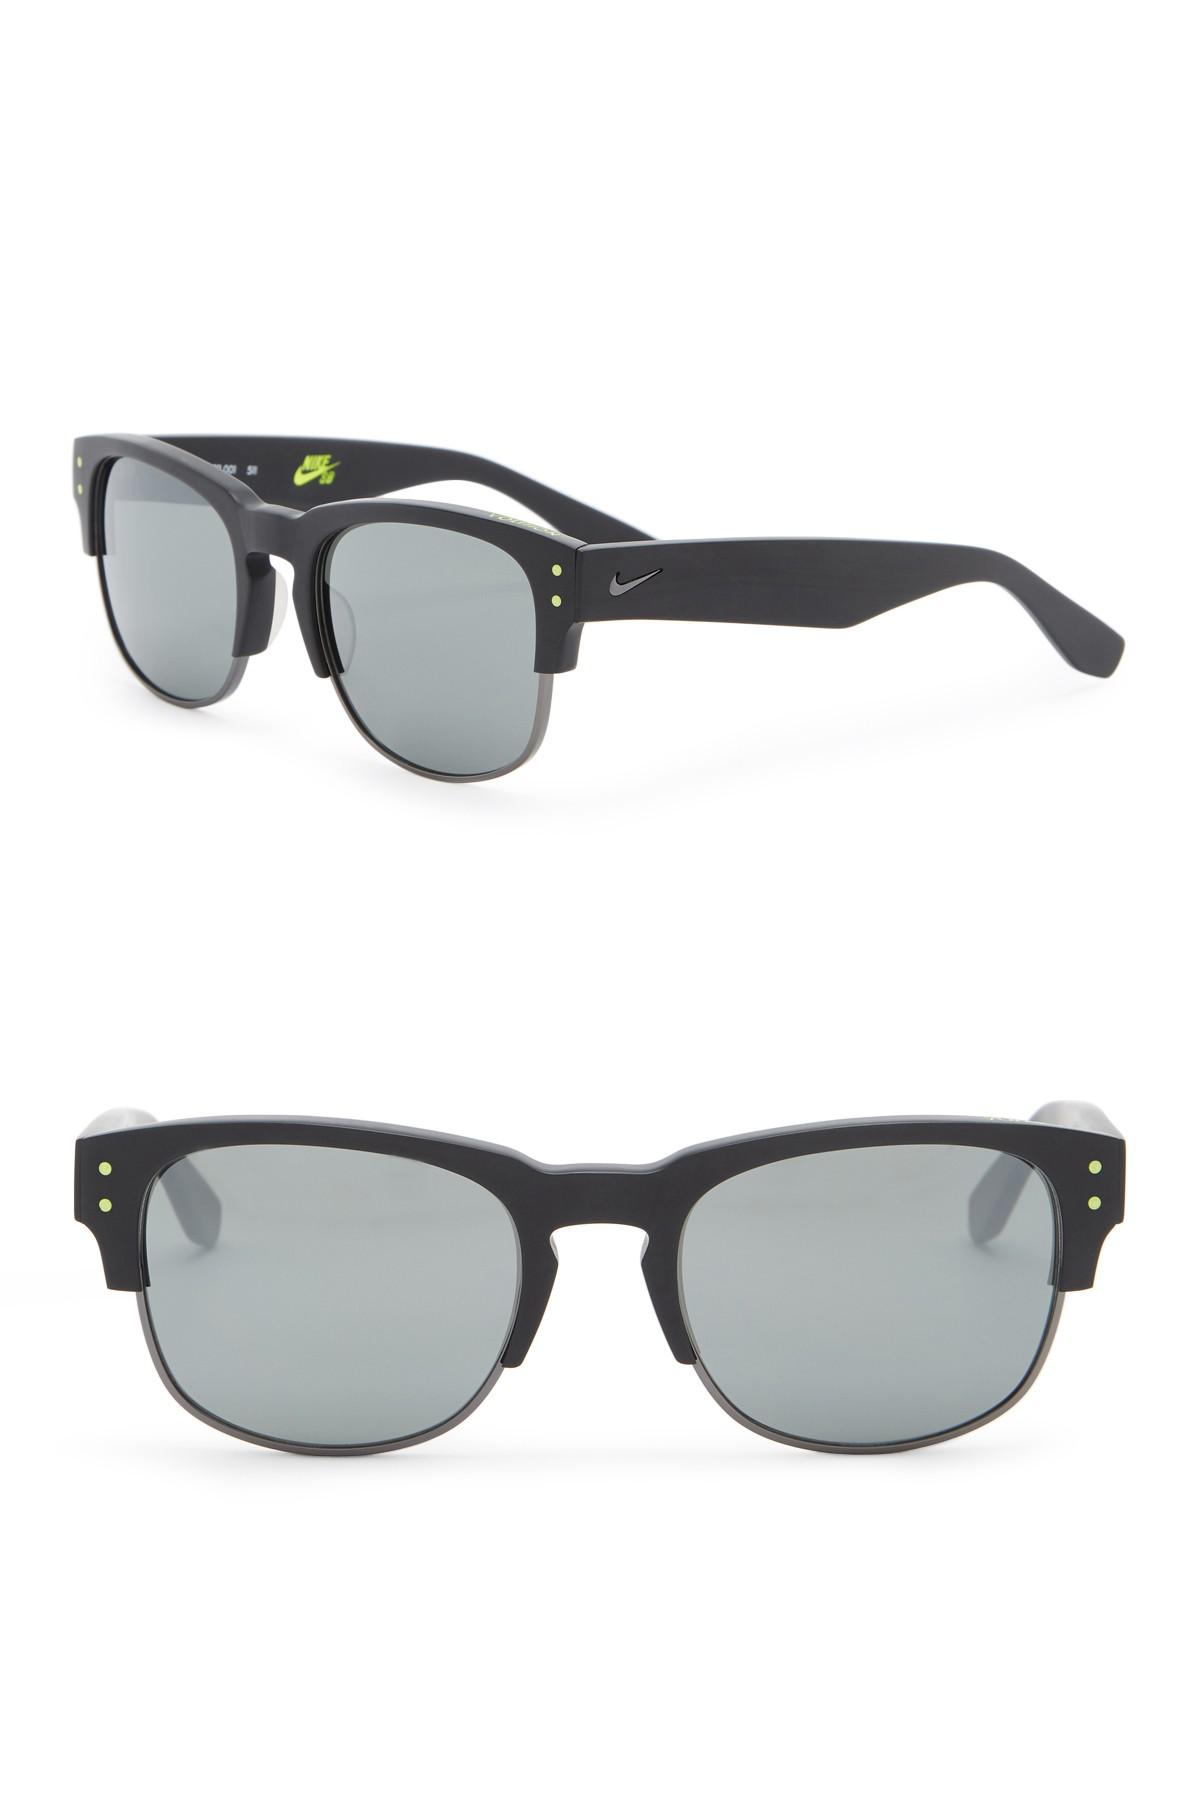 7ceea6667 Gallery. Previously sold at: Nordstrom Rack · Women's Clubmaster Sunglasses